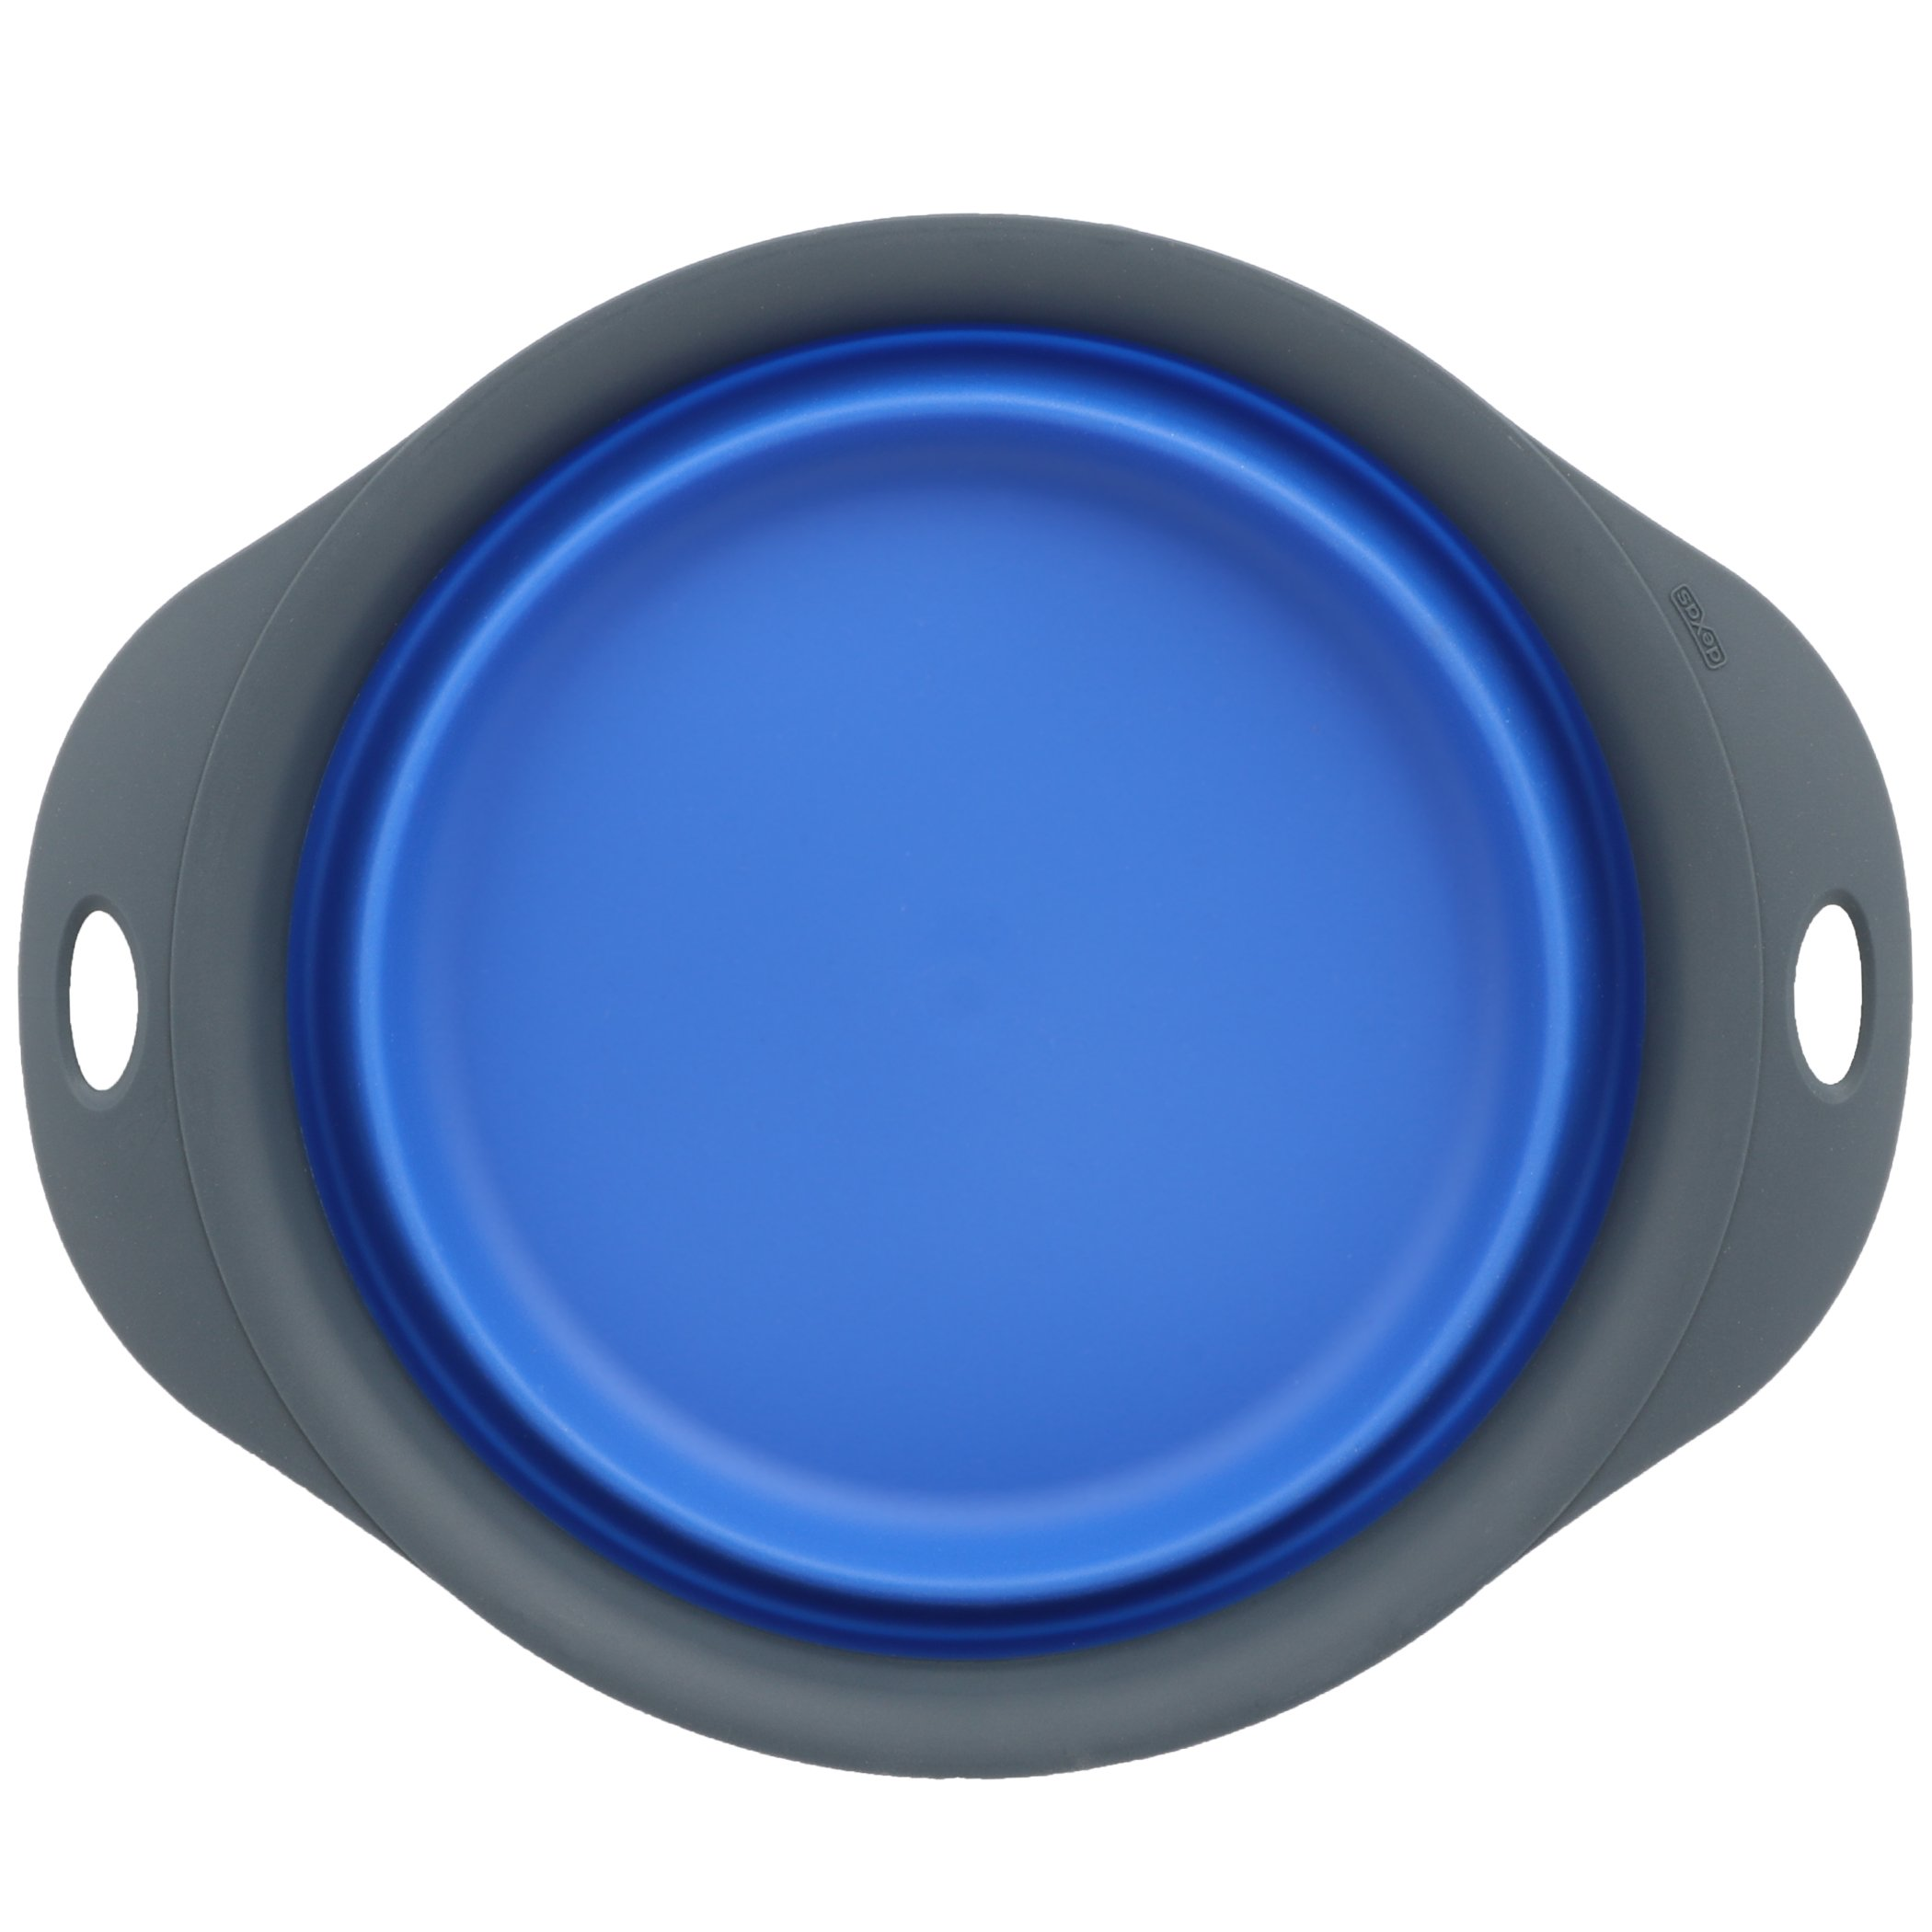 Dexas Popware for Pets Single Bowl Collapsible Travel Feeder, 6 Cup Capacity, Royal Blue